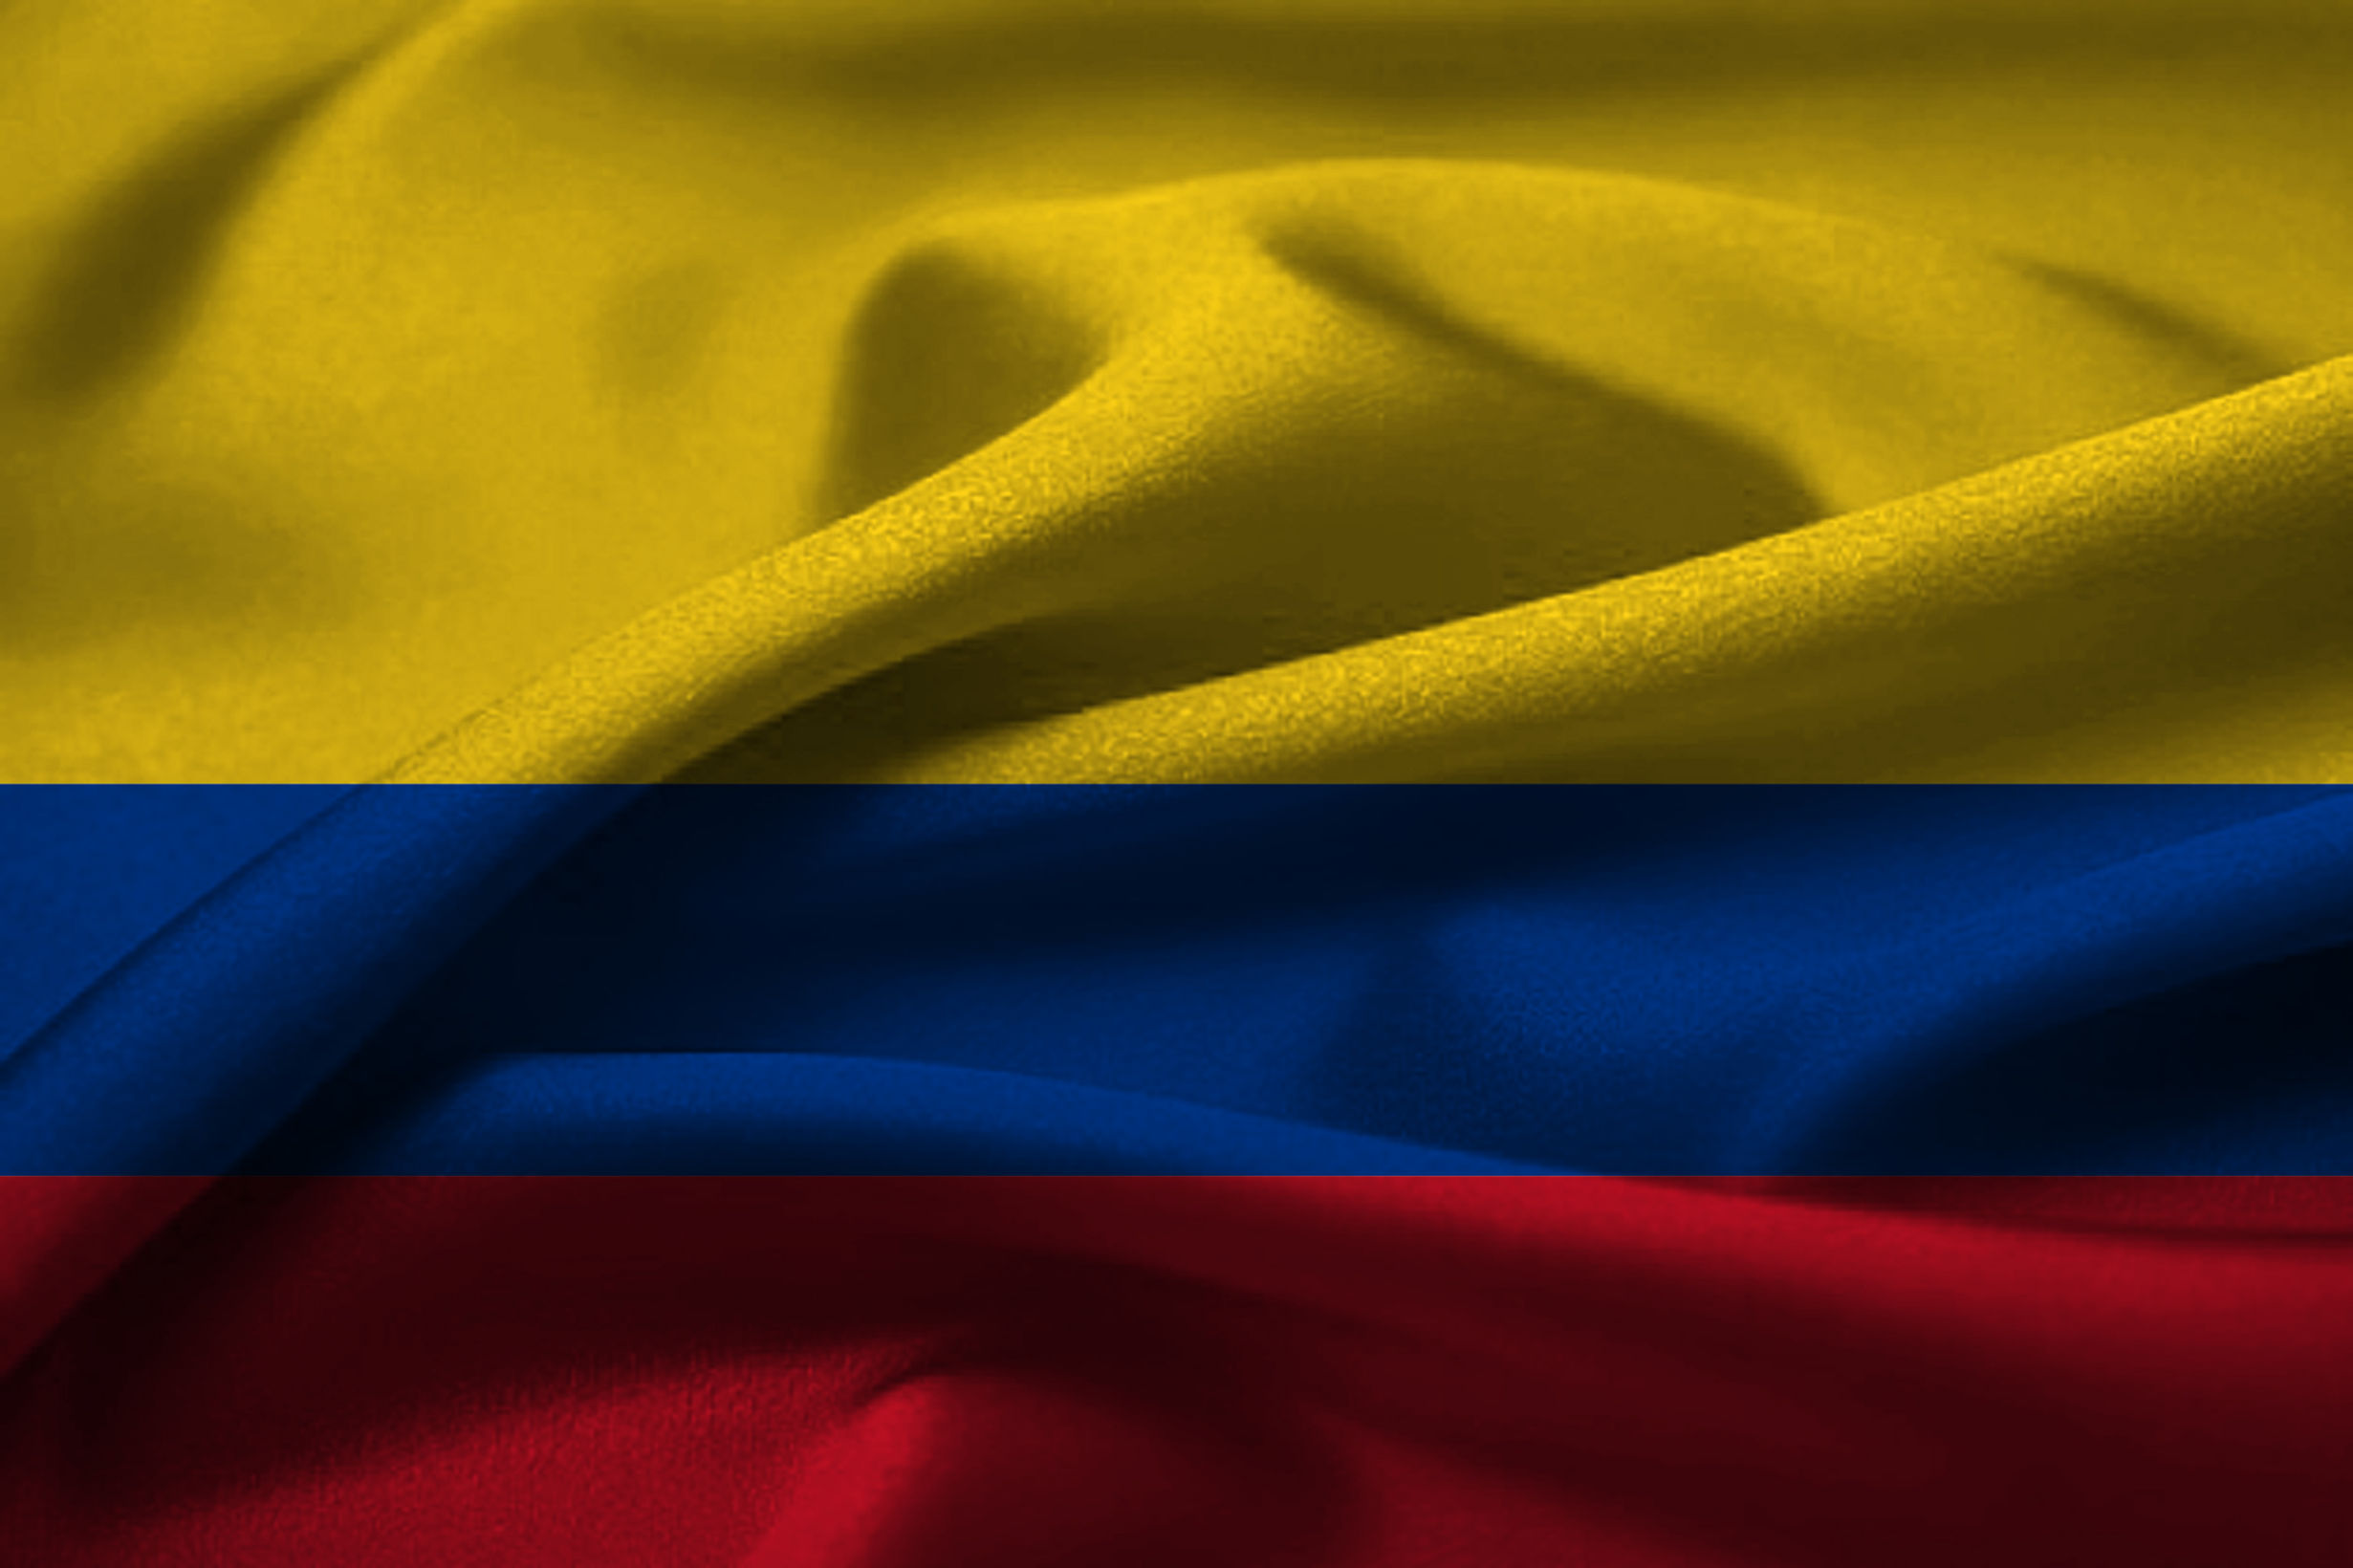 colombia background and history New granada: 1740-1810 the modern nations of venezuela, colombia and ecuador are grouped together, from 1740, as the spanish viceroyalty of new granada with its capital at bogotá the second half of the 18th century is a time of considerable progress in the region.